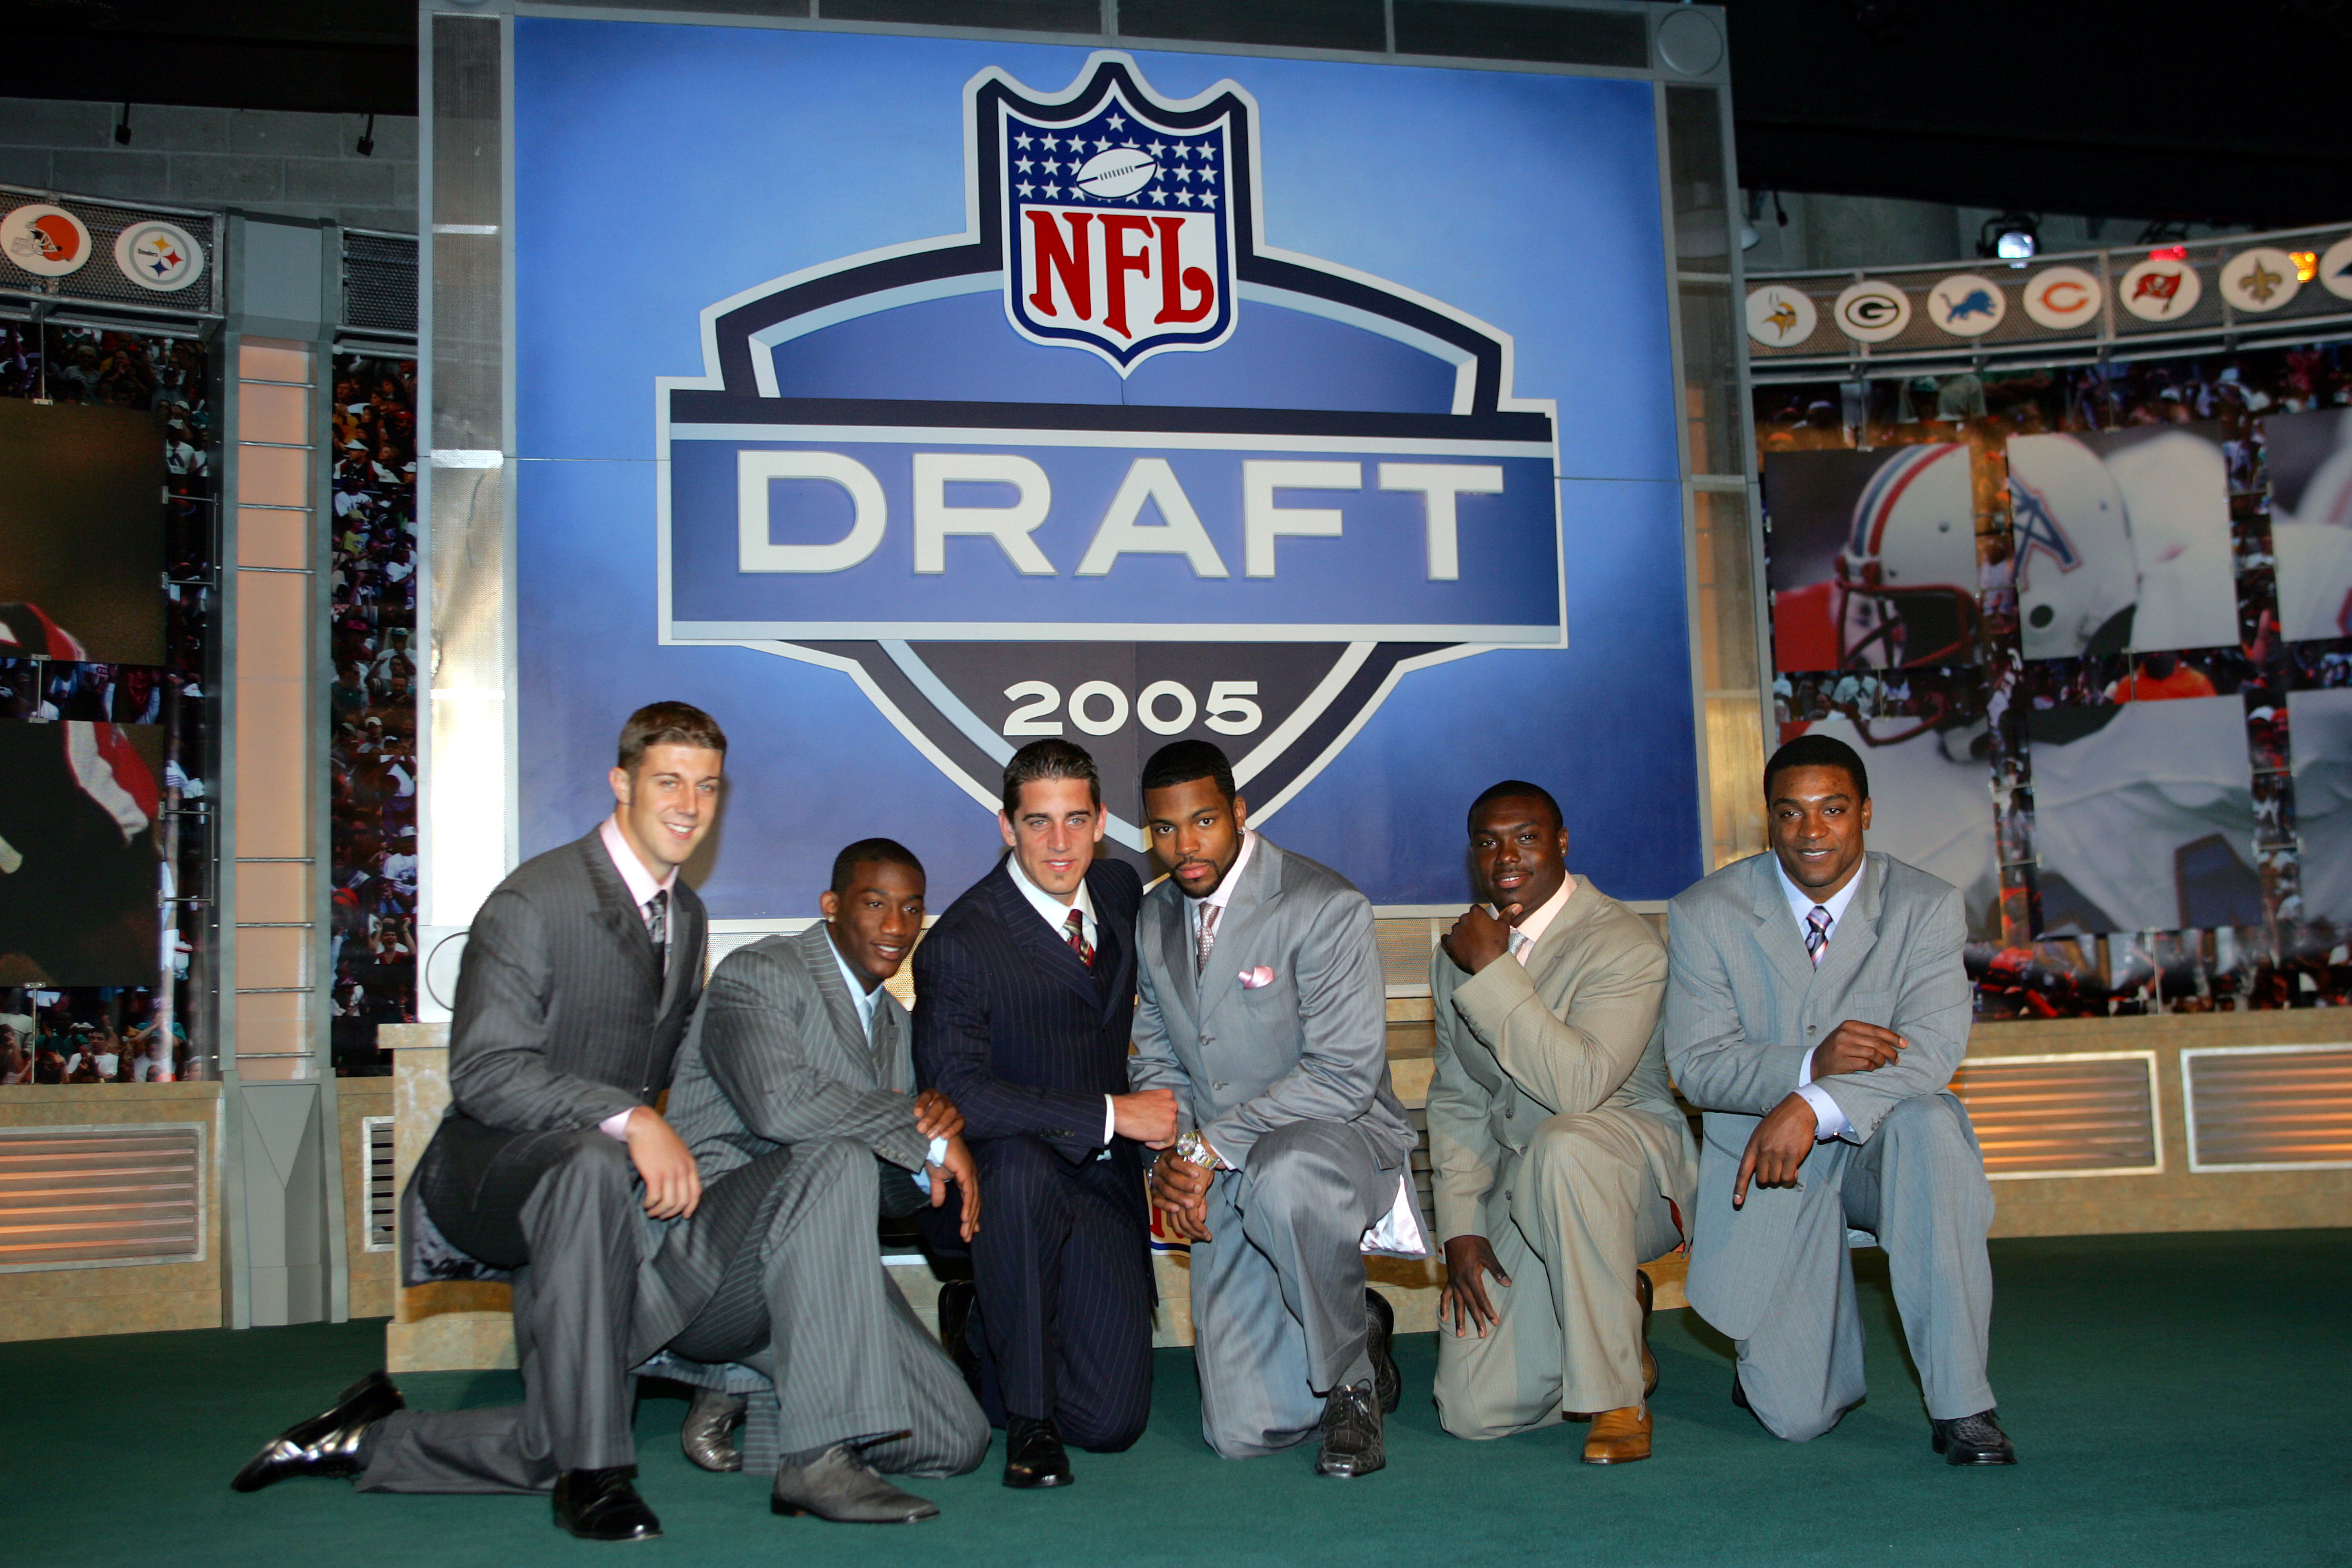 NEW YORK - APRIL 23:  (L-R) Alex Smith (Utah), Antrel Rolle (Miami), Aaron Rodgers (California), Braylon Edwards (Michigan),Ronnie Brown (Auburn) and Cedric Benson (Texas) pose during the 70th NFL Draft on April 23, 2005 at the Jacob K. Javits Convention